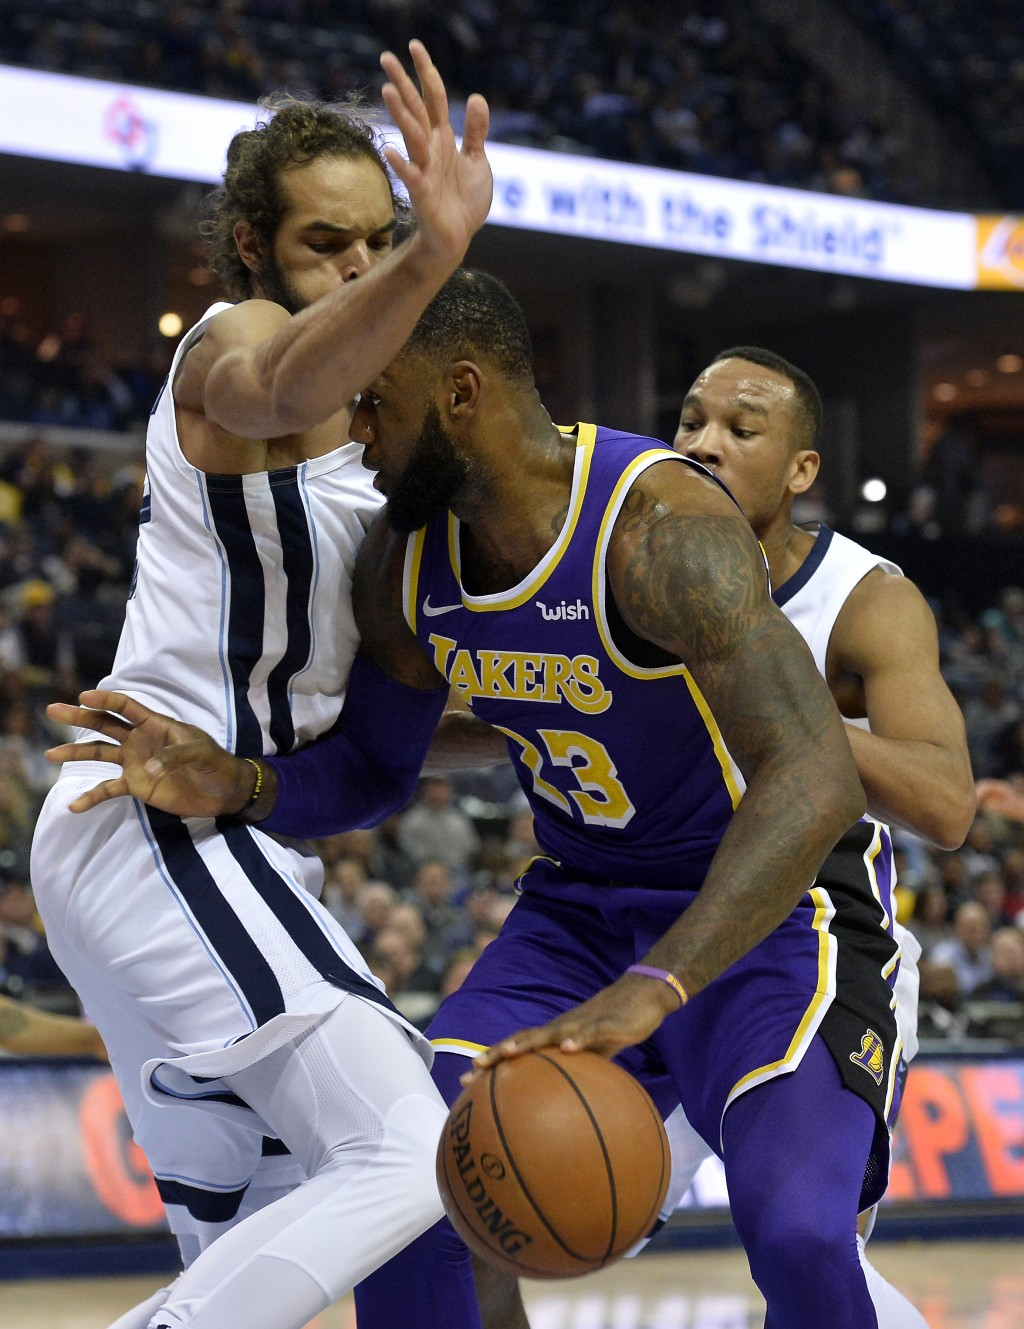 Los Angeles Lakers forward LeBron James (23) handles the ball between Memphis Grizzlies center Joakim Noah, left, and guard Avery Bradley in the first...